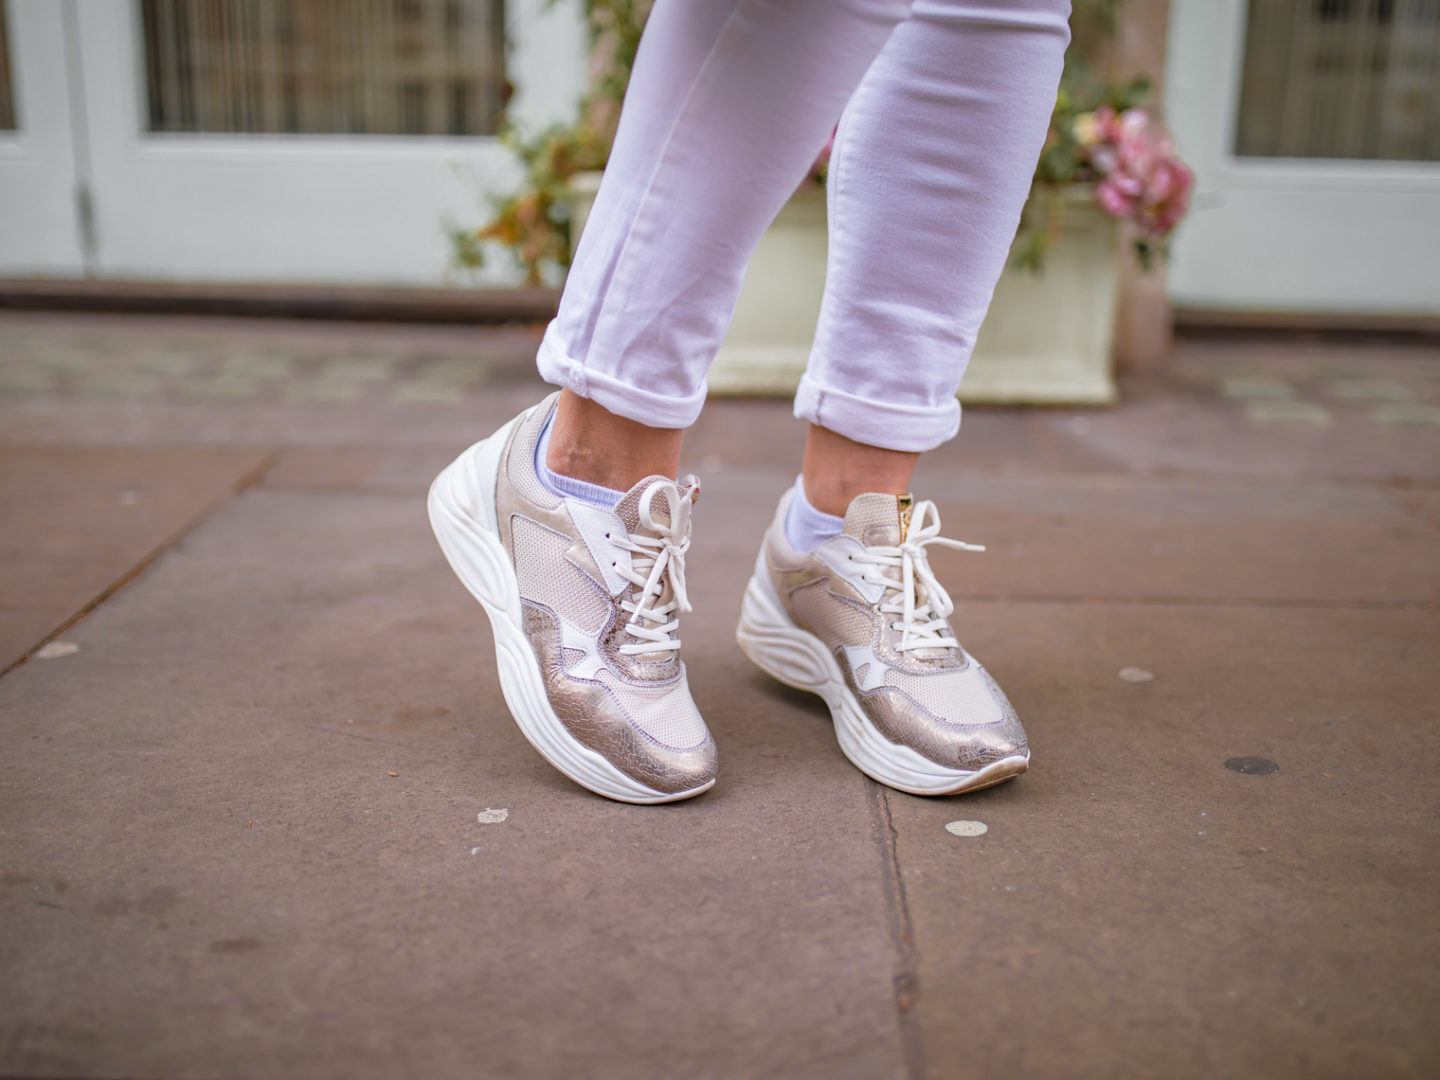 Best thing to buy this month: Chunky trainers that you will wear all year round